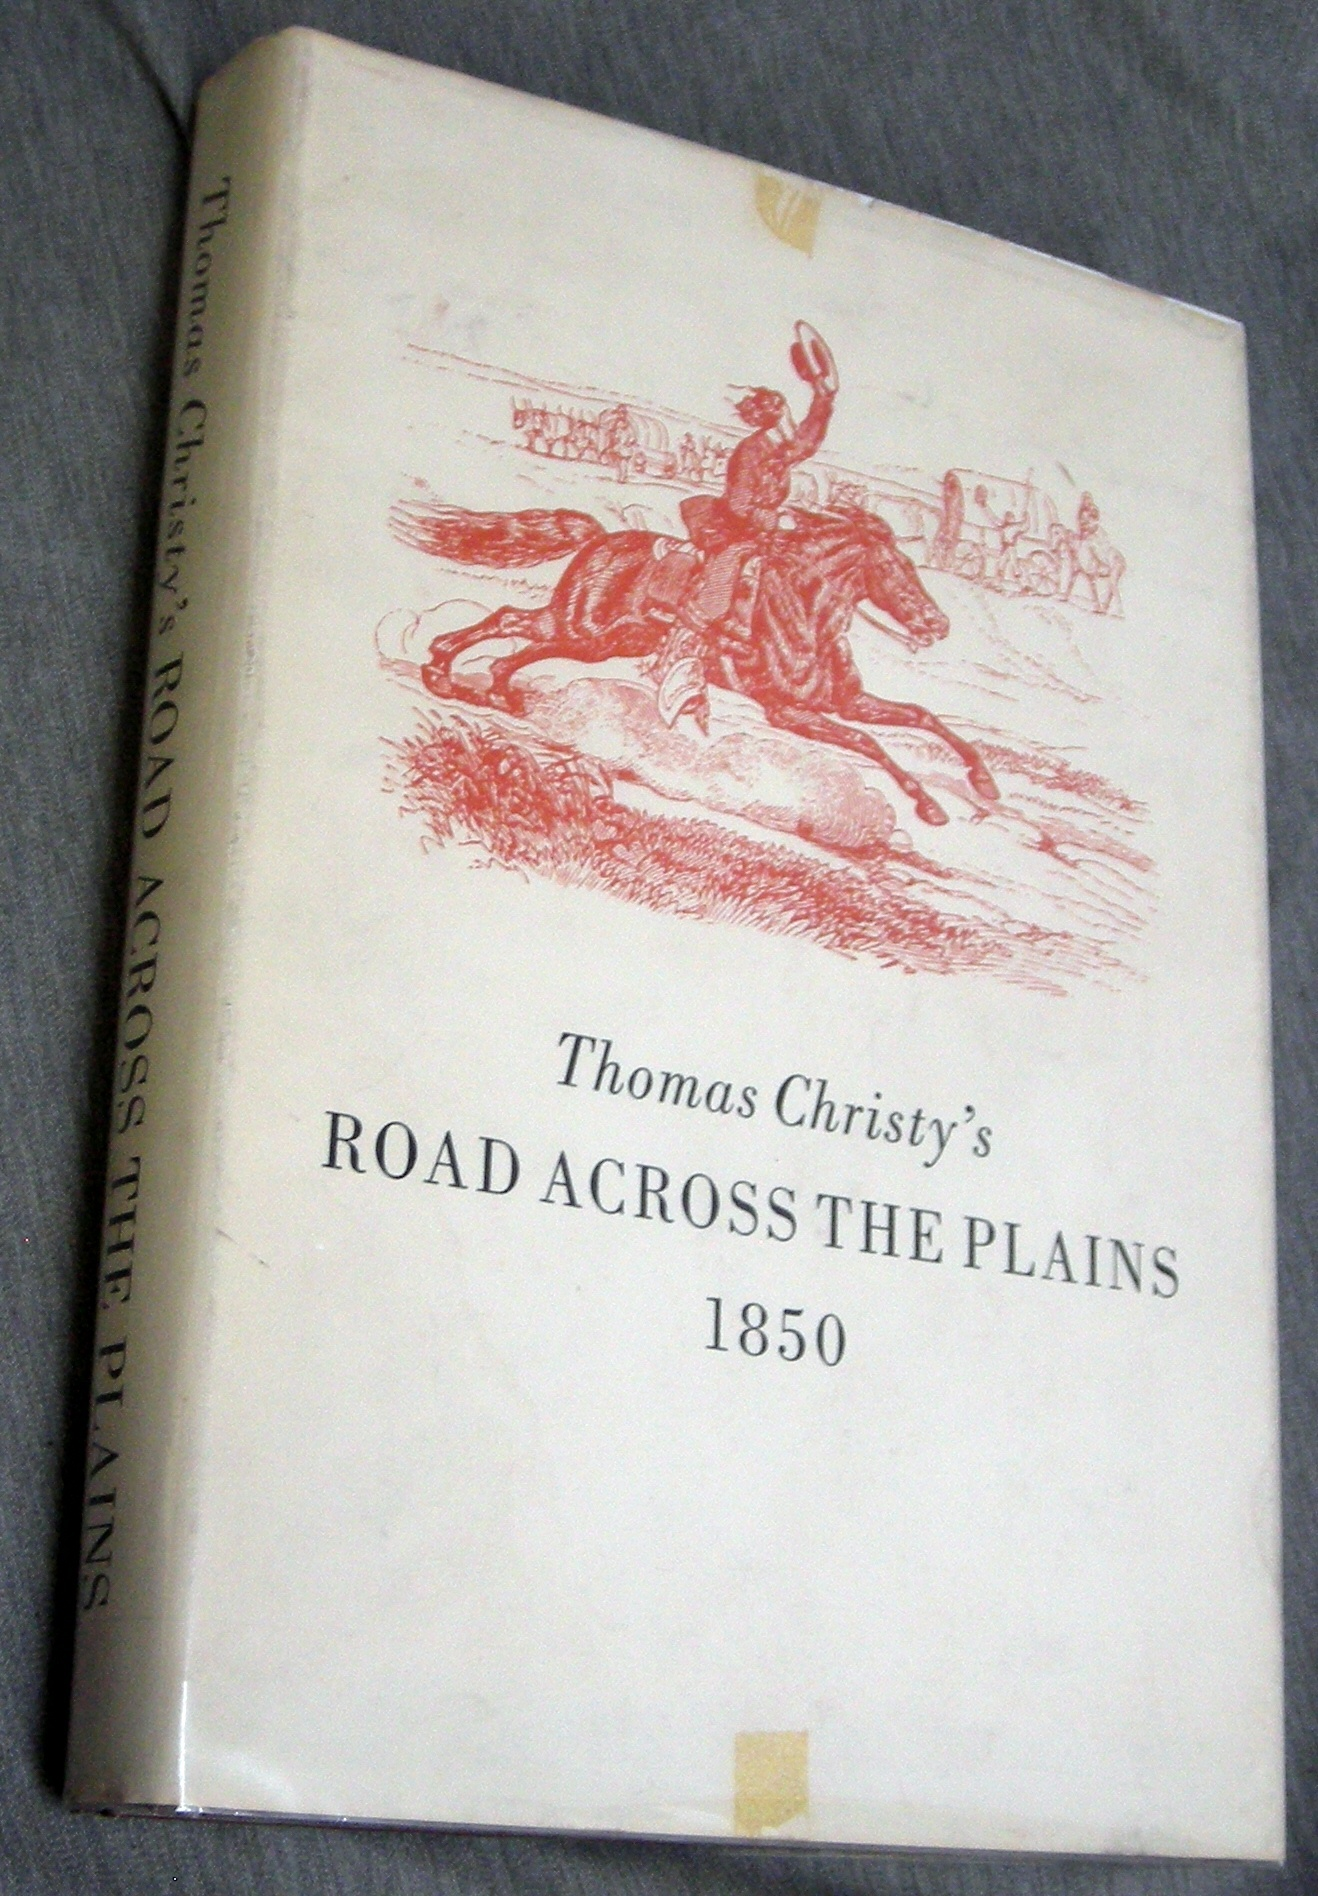 Thomas Christy's Road Across the Plains - 1850 - A Guide to the Route from Mormon Crossing, Now Omaha, Nebraska, to the City of Sacramento, California... Together with His Diary of the Same Journey